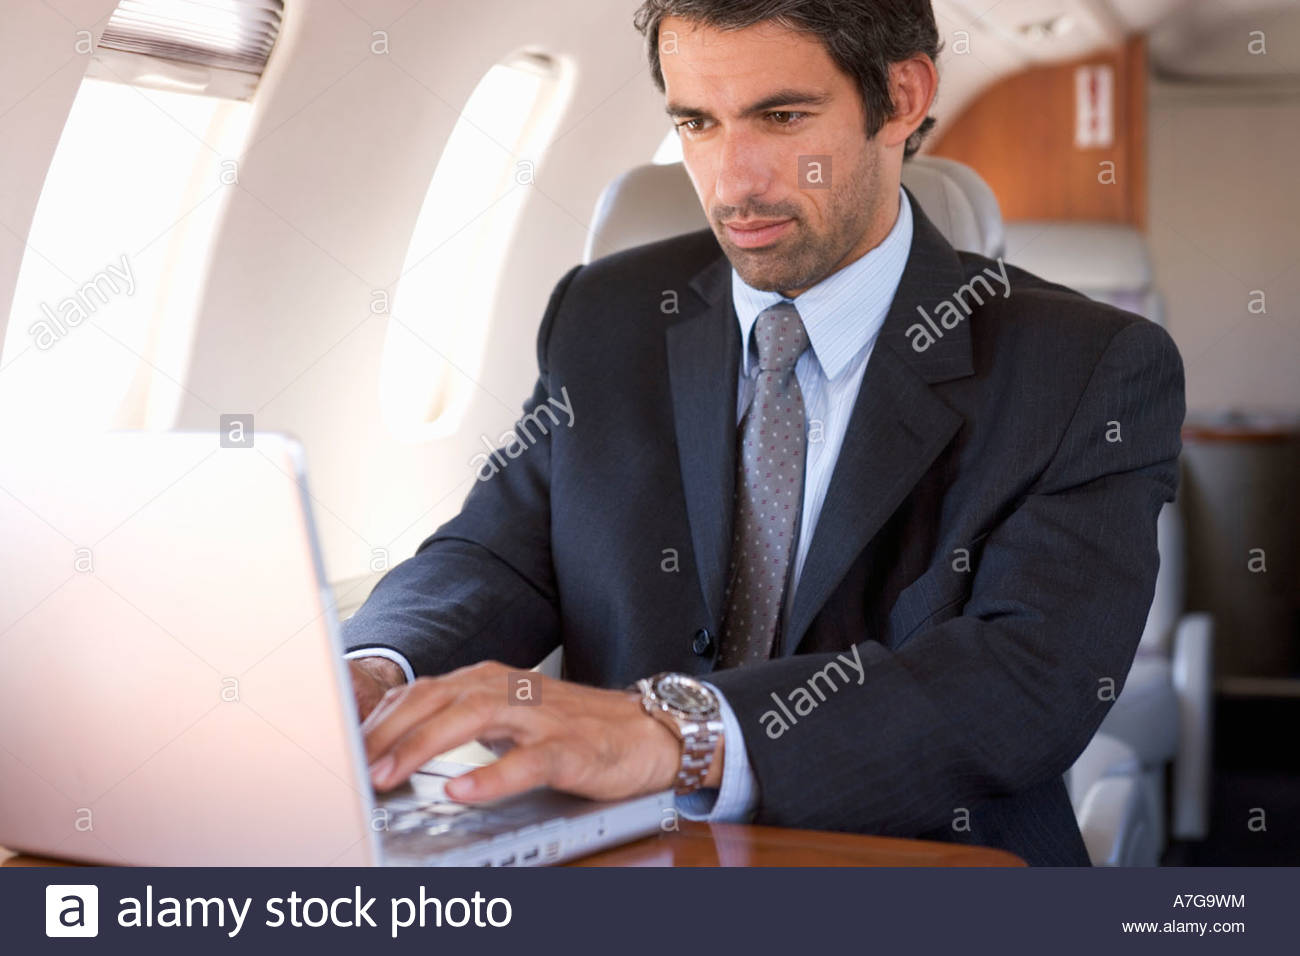 A businessman using a laptop in a plane - Stock Image